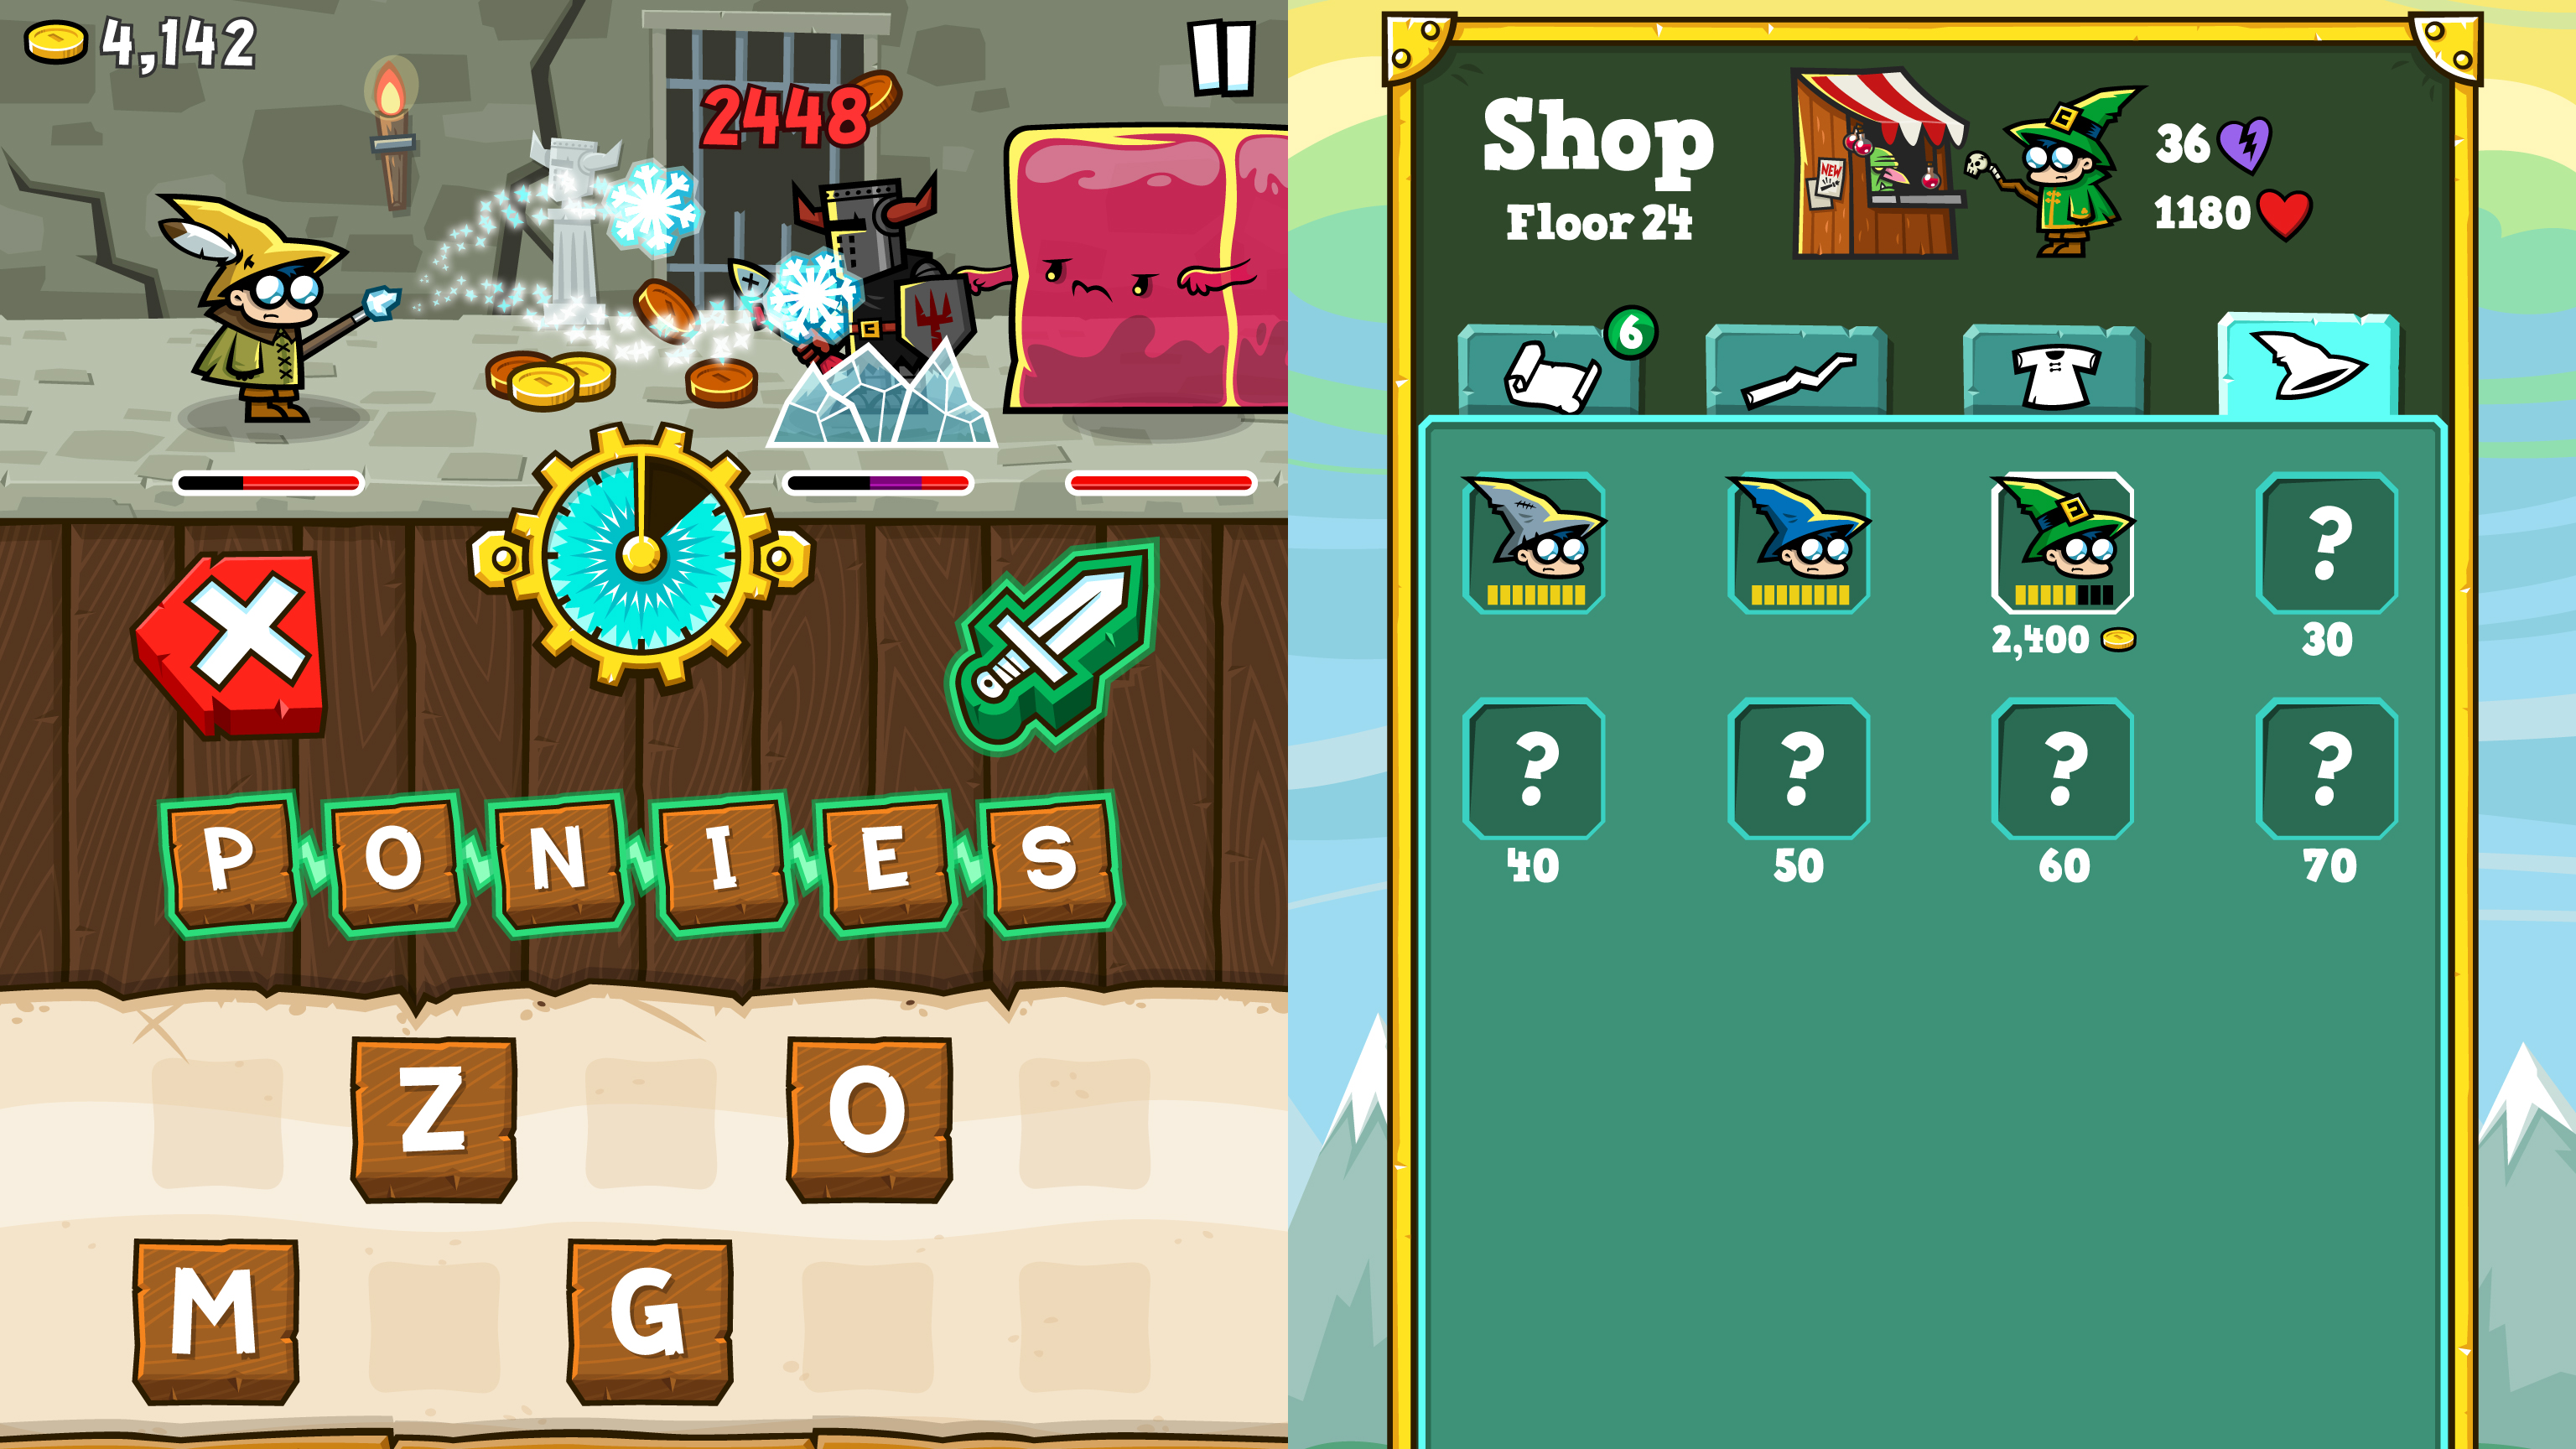 GEJjFPfpuizbpuNBrQhQEJ - The best free Android games 2018